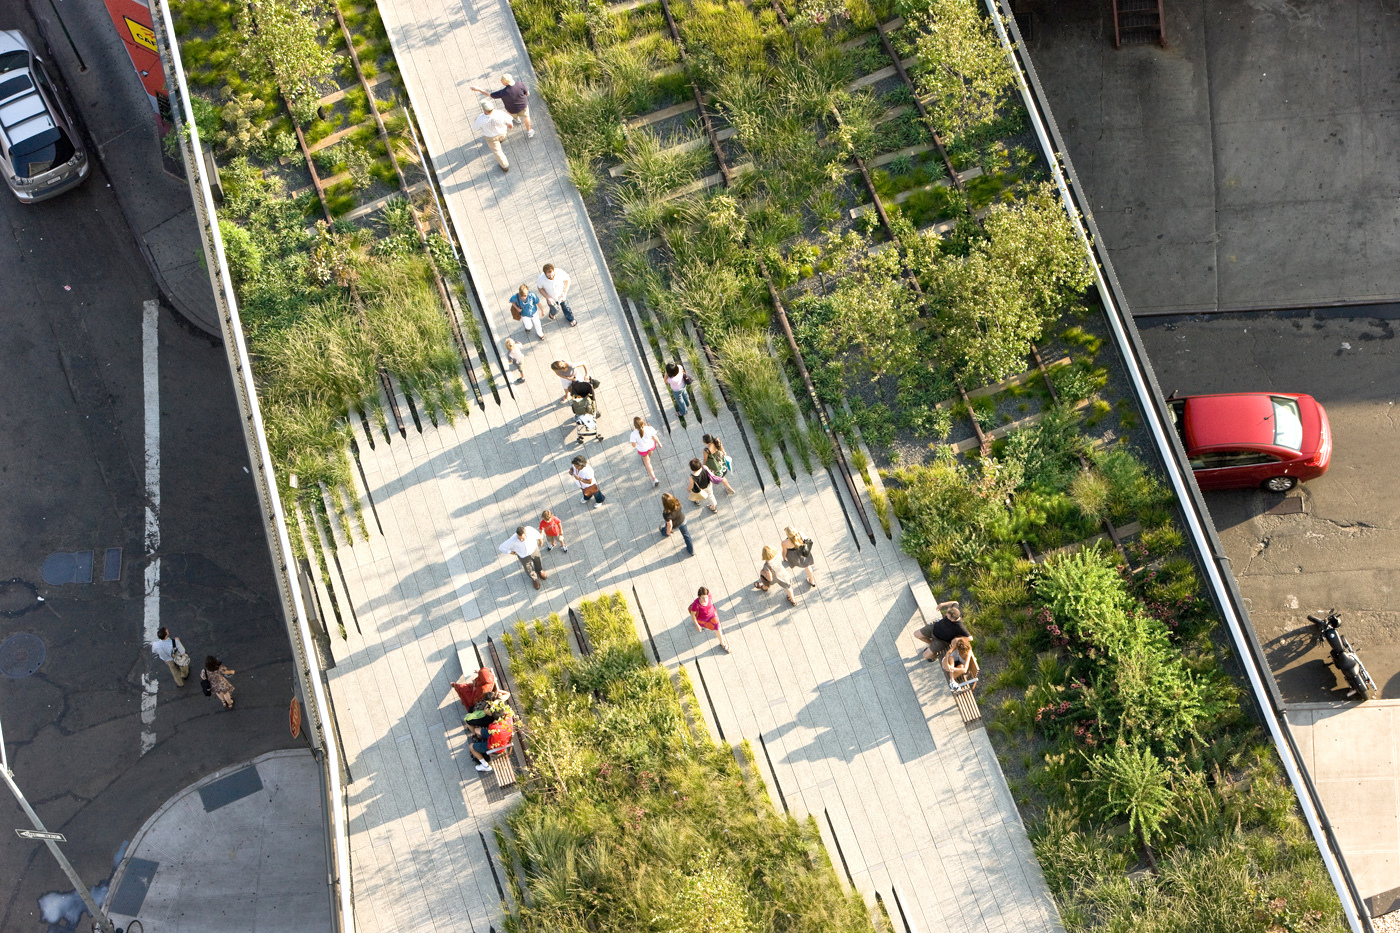 The New York City High Line:a converted elevated rail system now boastingaverdant, green walkway snaking through the harsh urban landscape while also helping to collect and retain storm water.